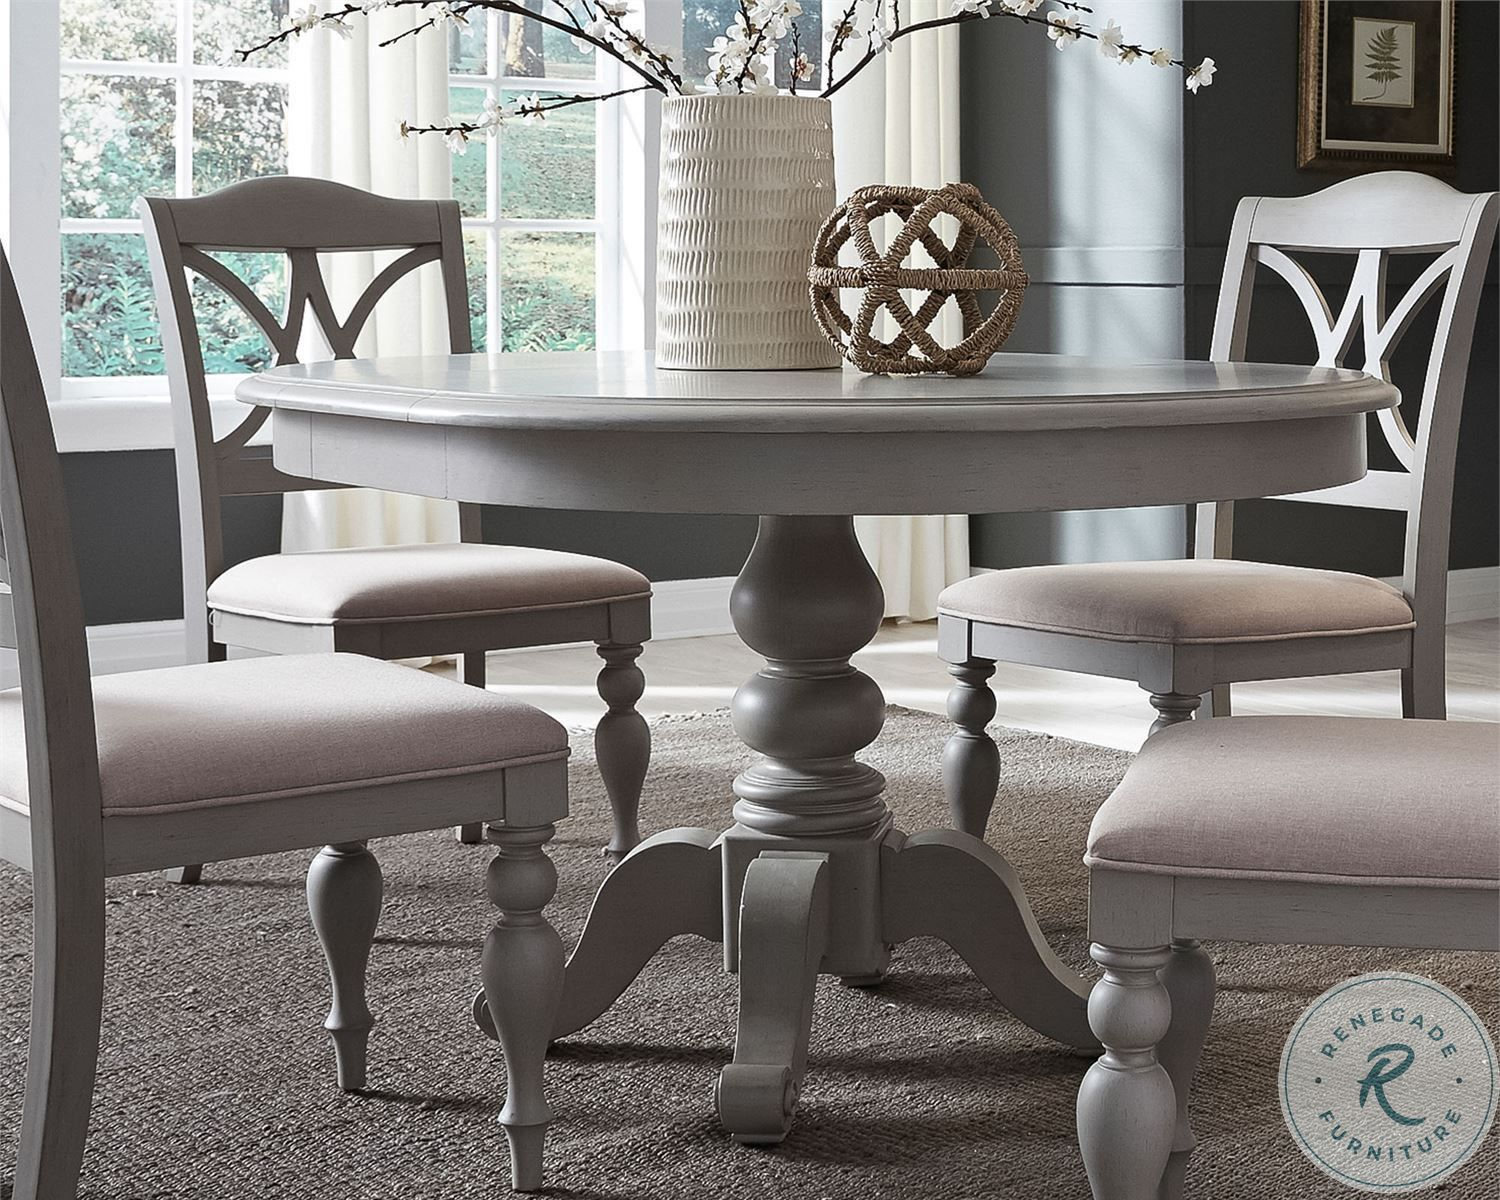 Summer House Dove Grey Extendable Round Pedestal Dining Room Set In 2021 Round Dining Room Table Round Dining Room Sets Grey Dining Tables Circle kitchen table set